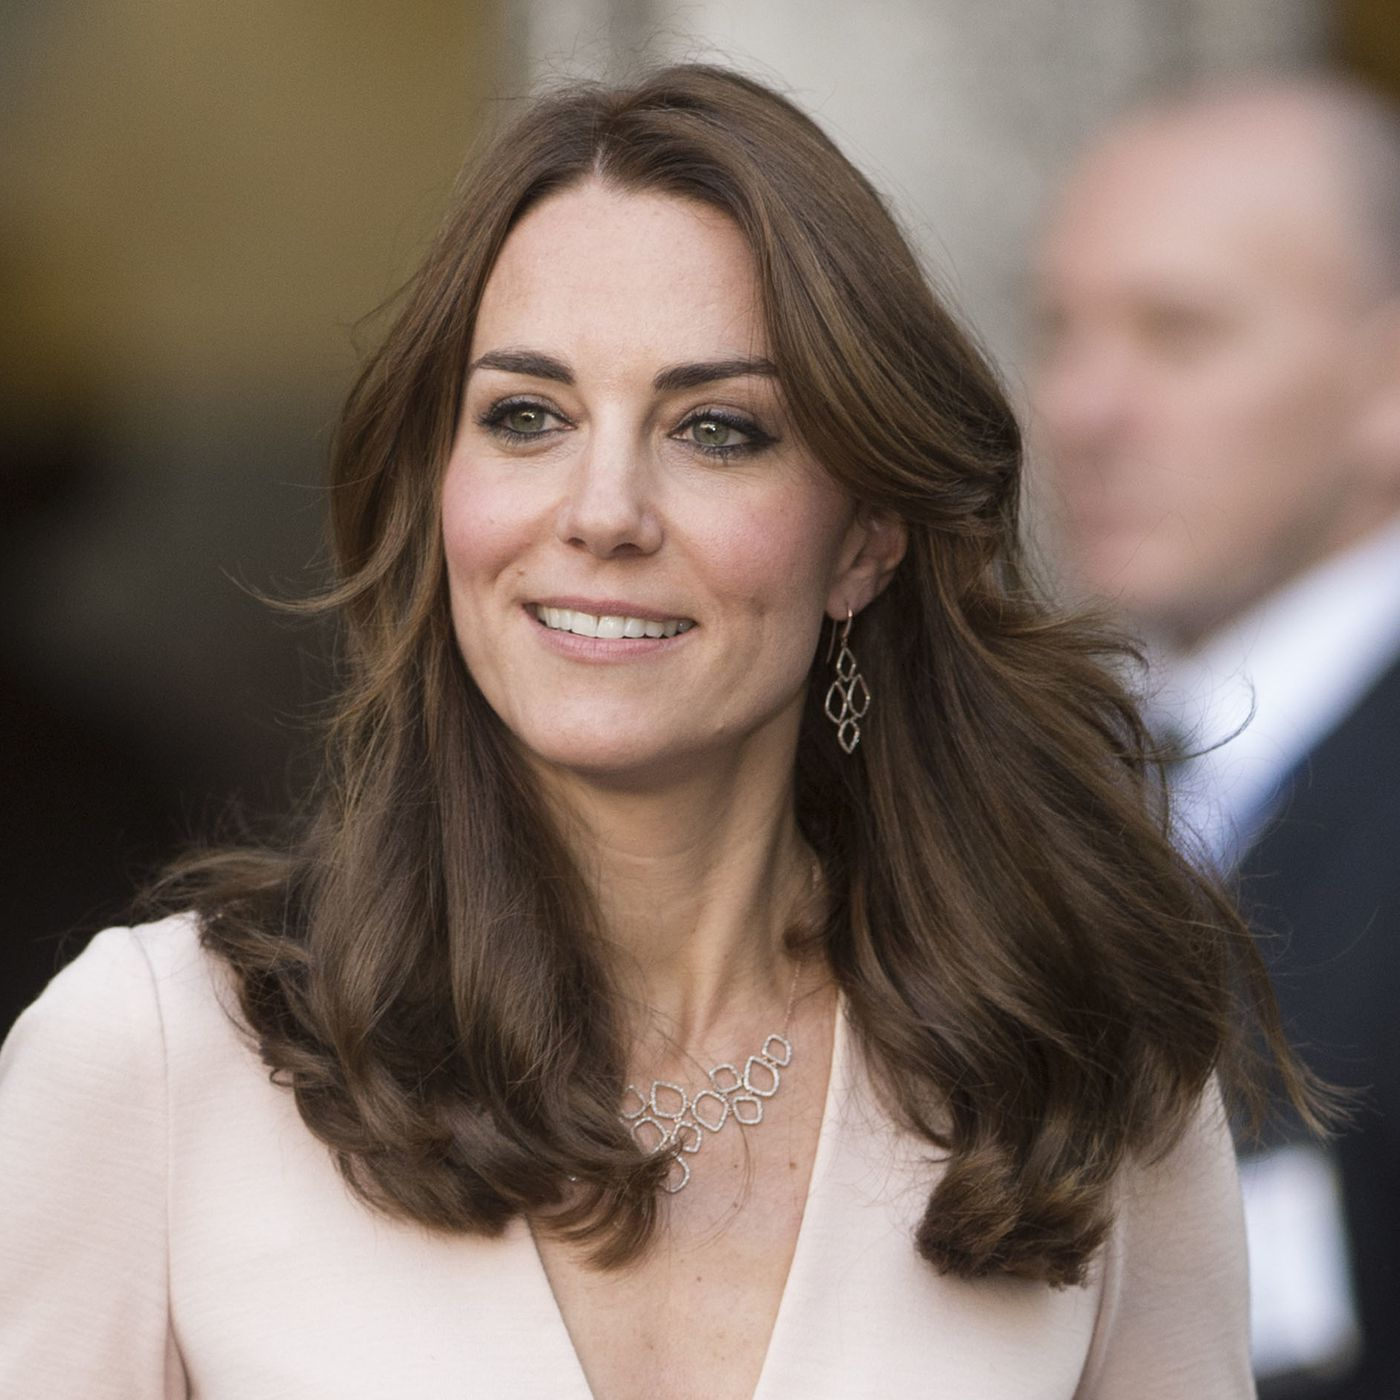 some people deeply upset by kate middleton s hair racked deeply upset by kate middleton s hair